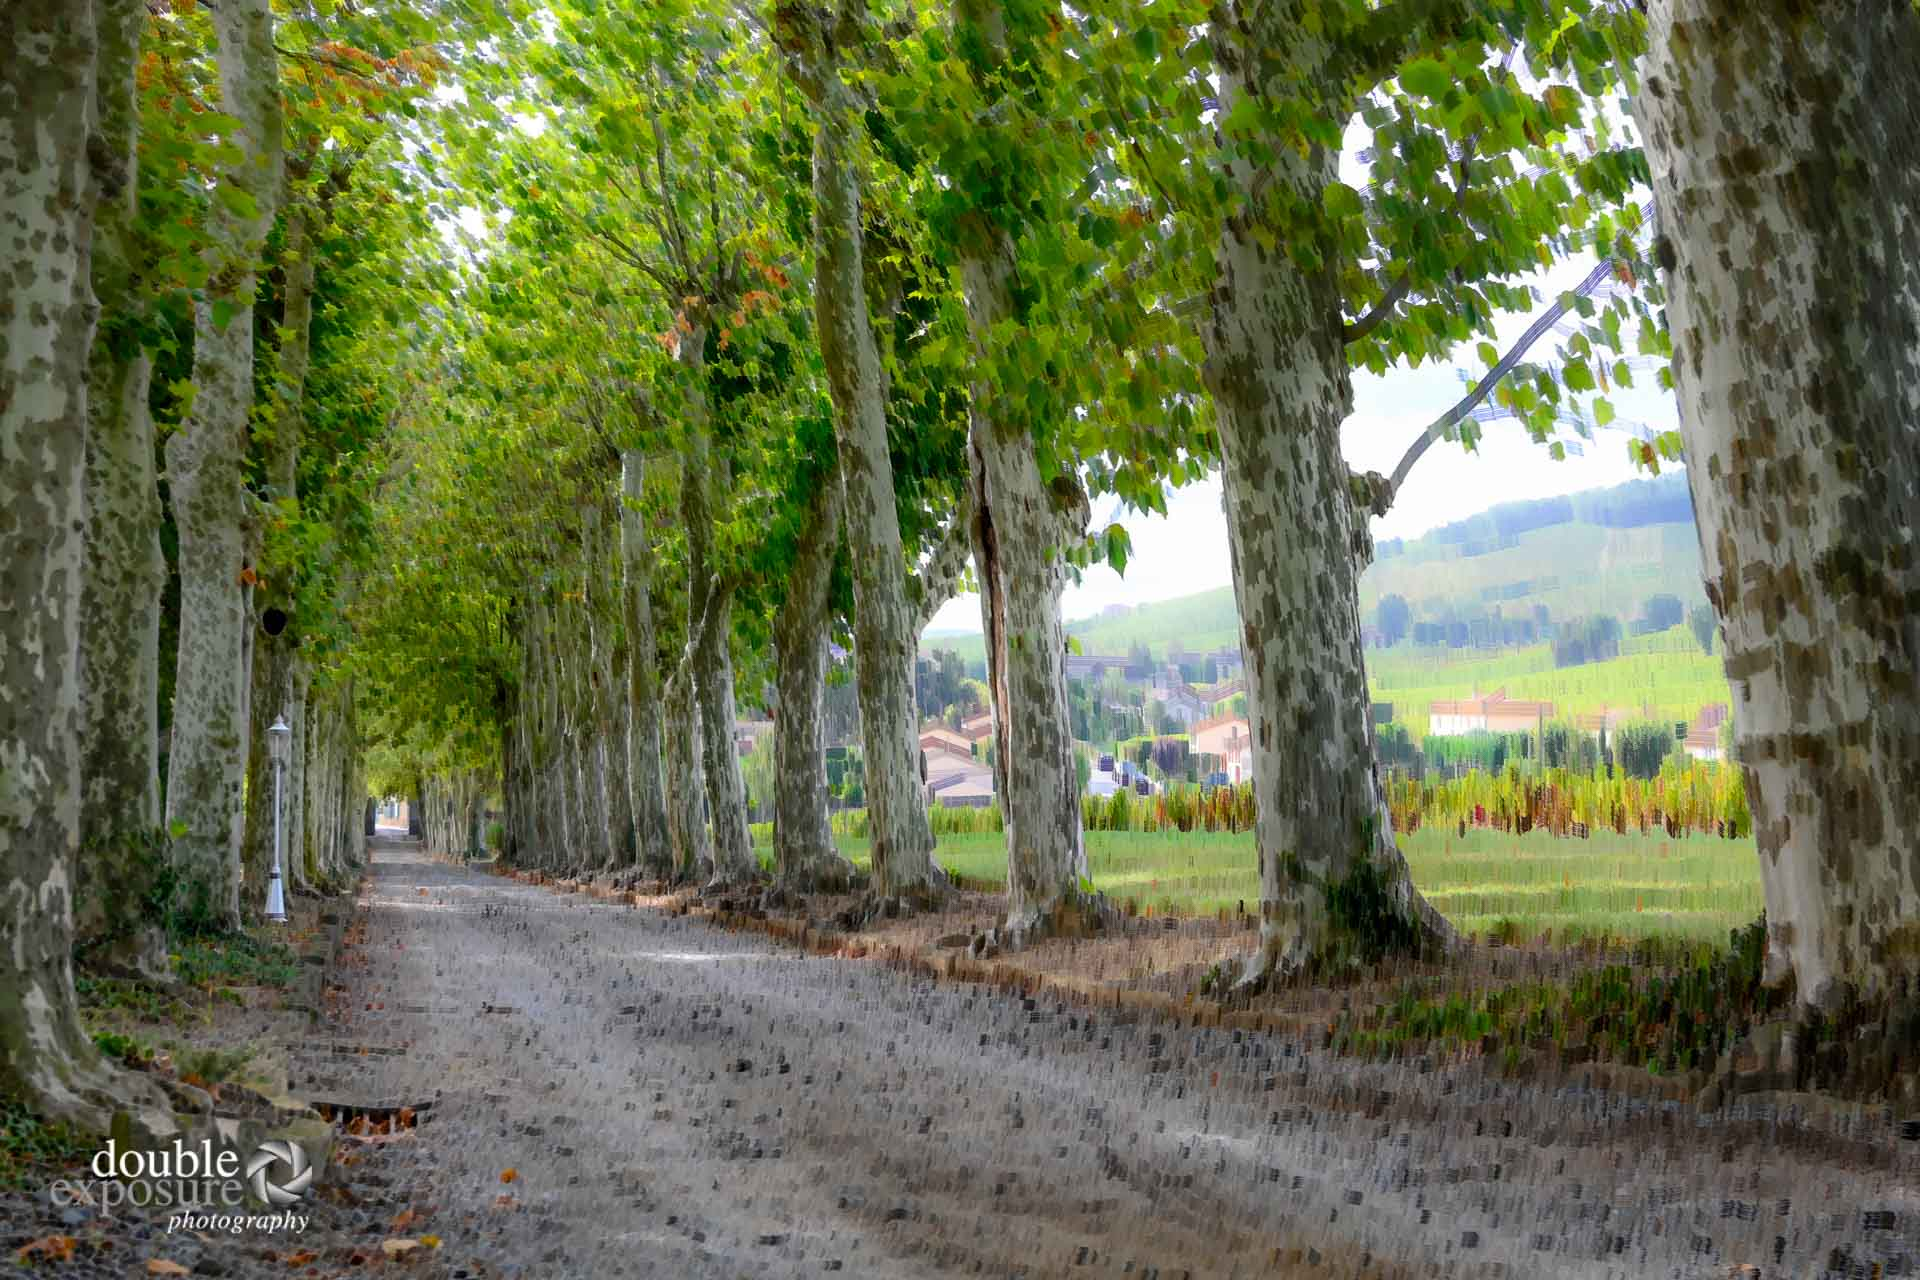 A road of plane trees